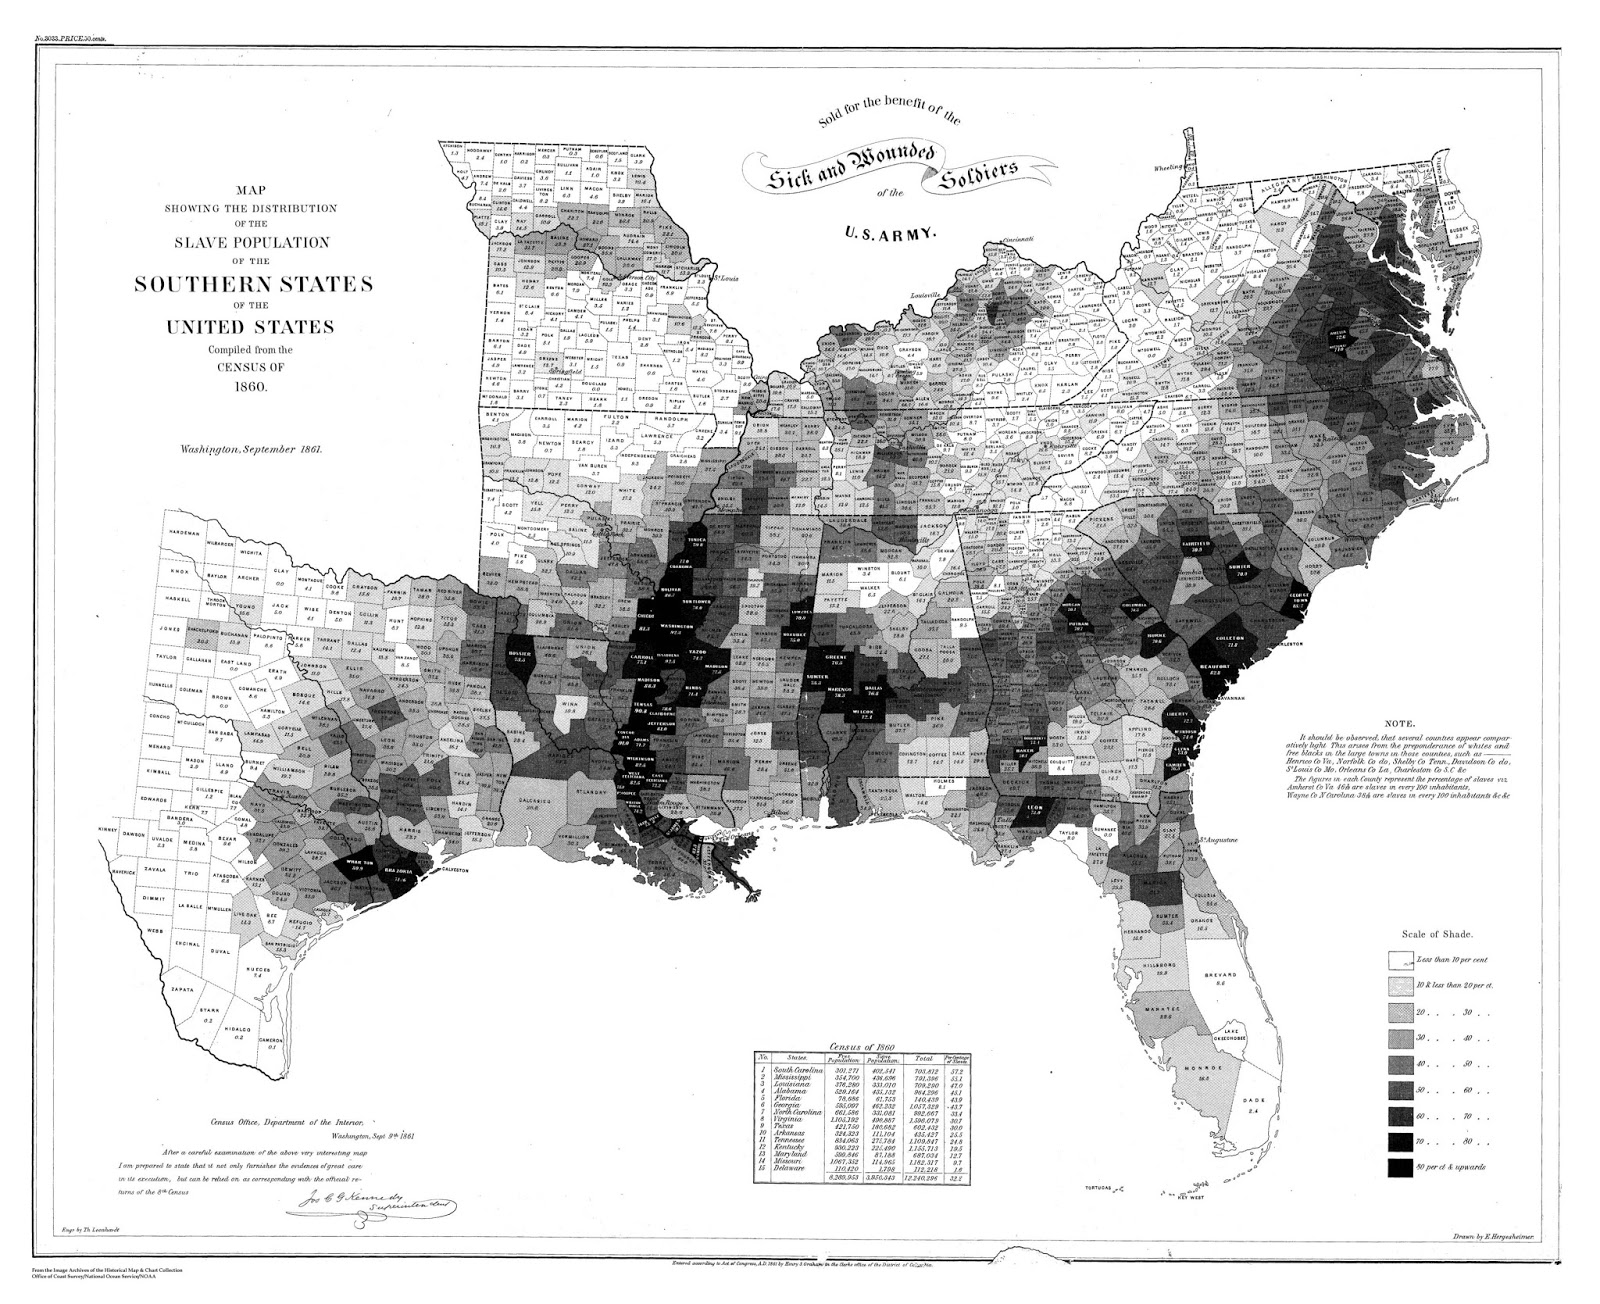 Slave population of the southern states of the U.S